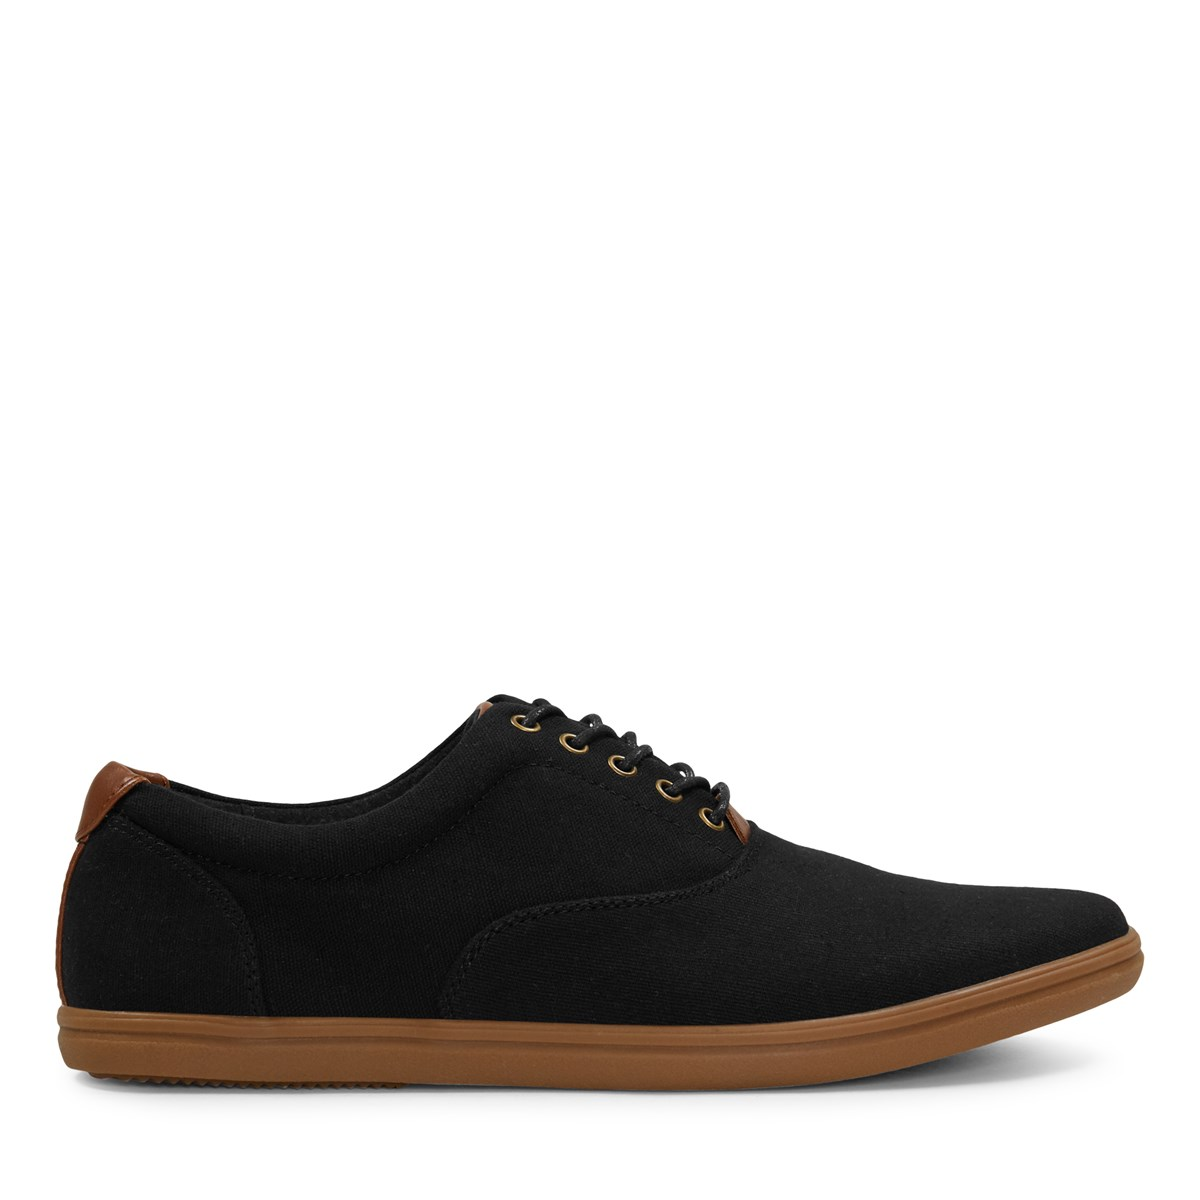 Men's Gustavo Shoes in Black